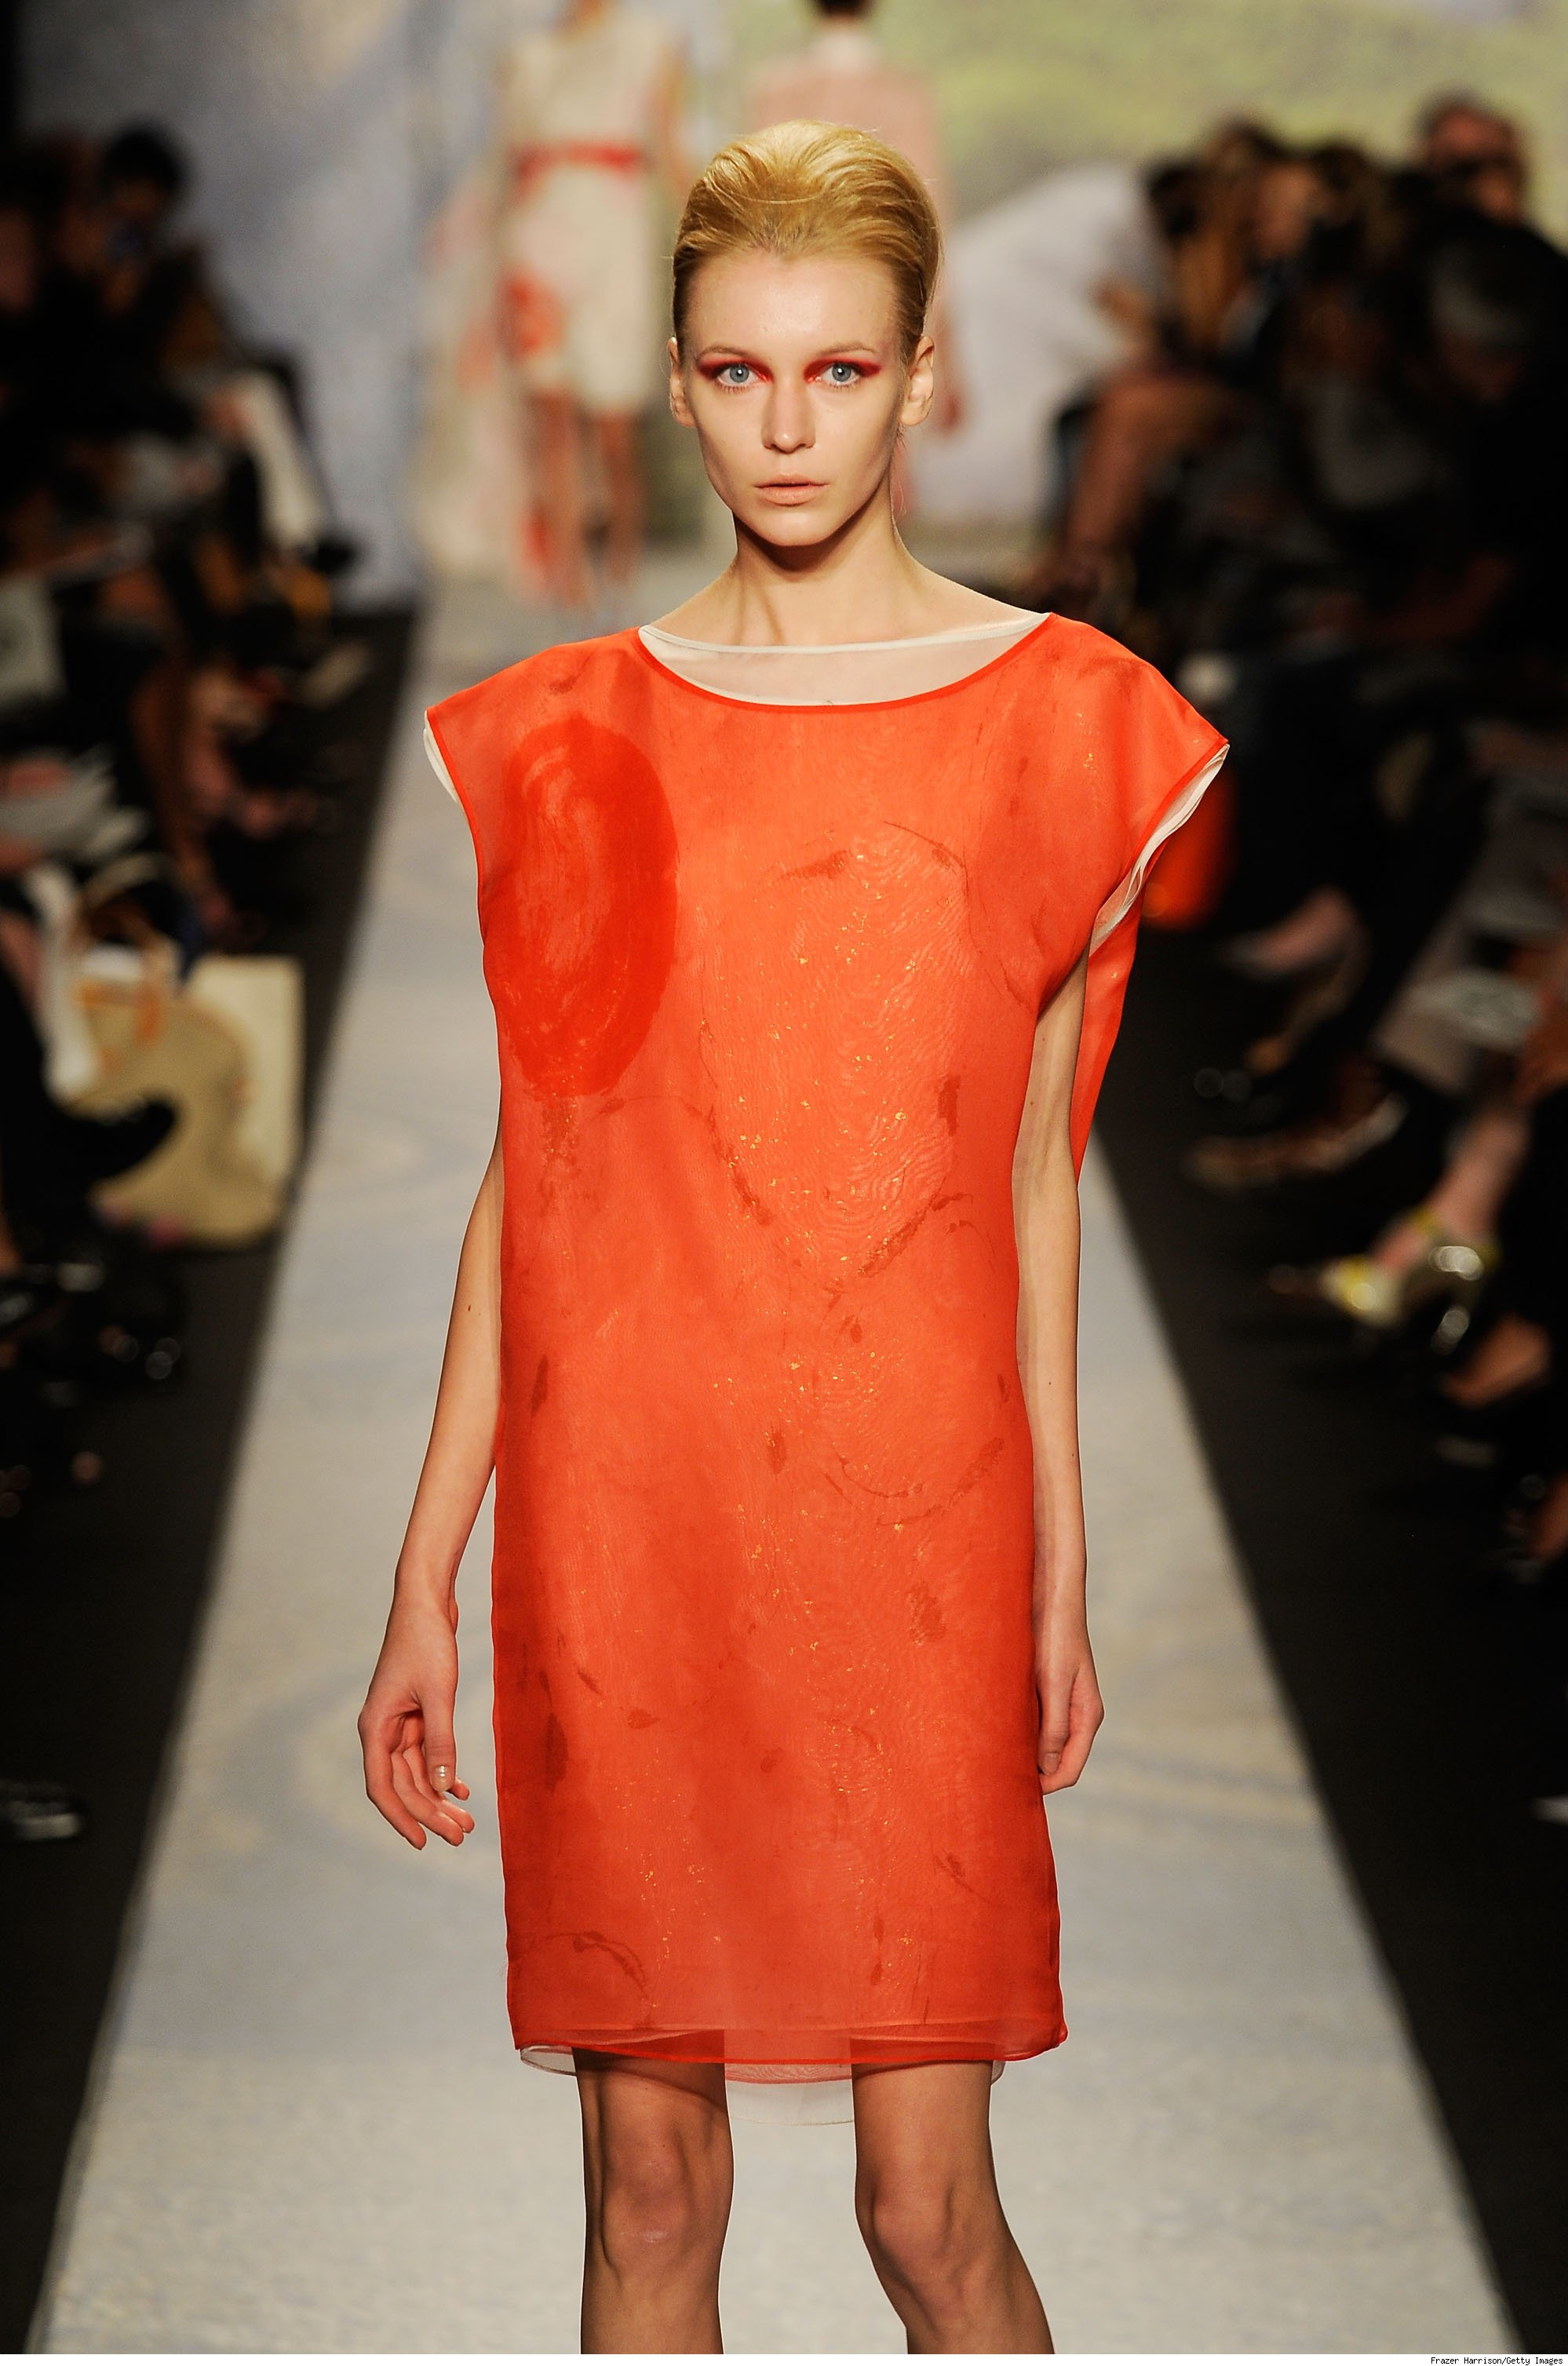 Ports 1961 - Runway - Spring 2010 MBFW 